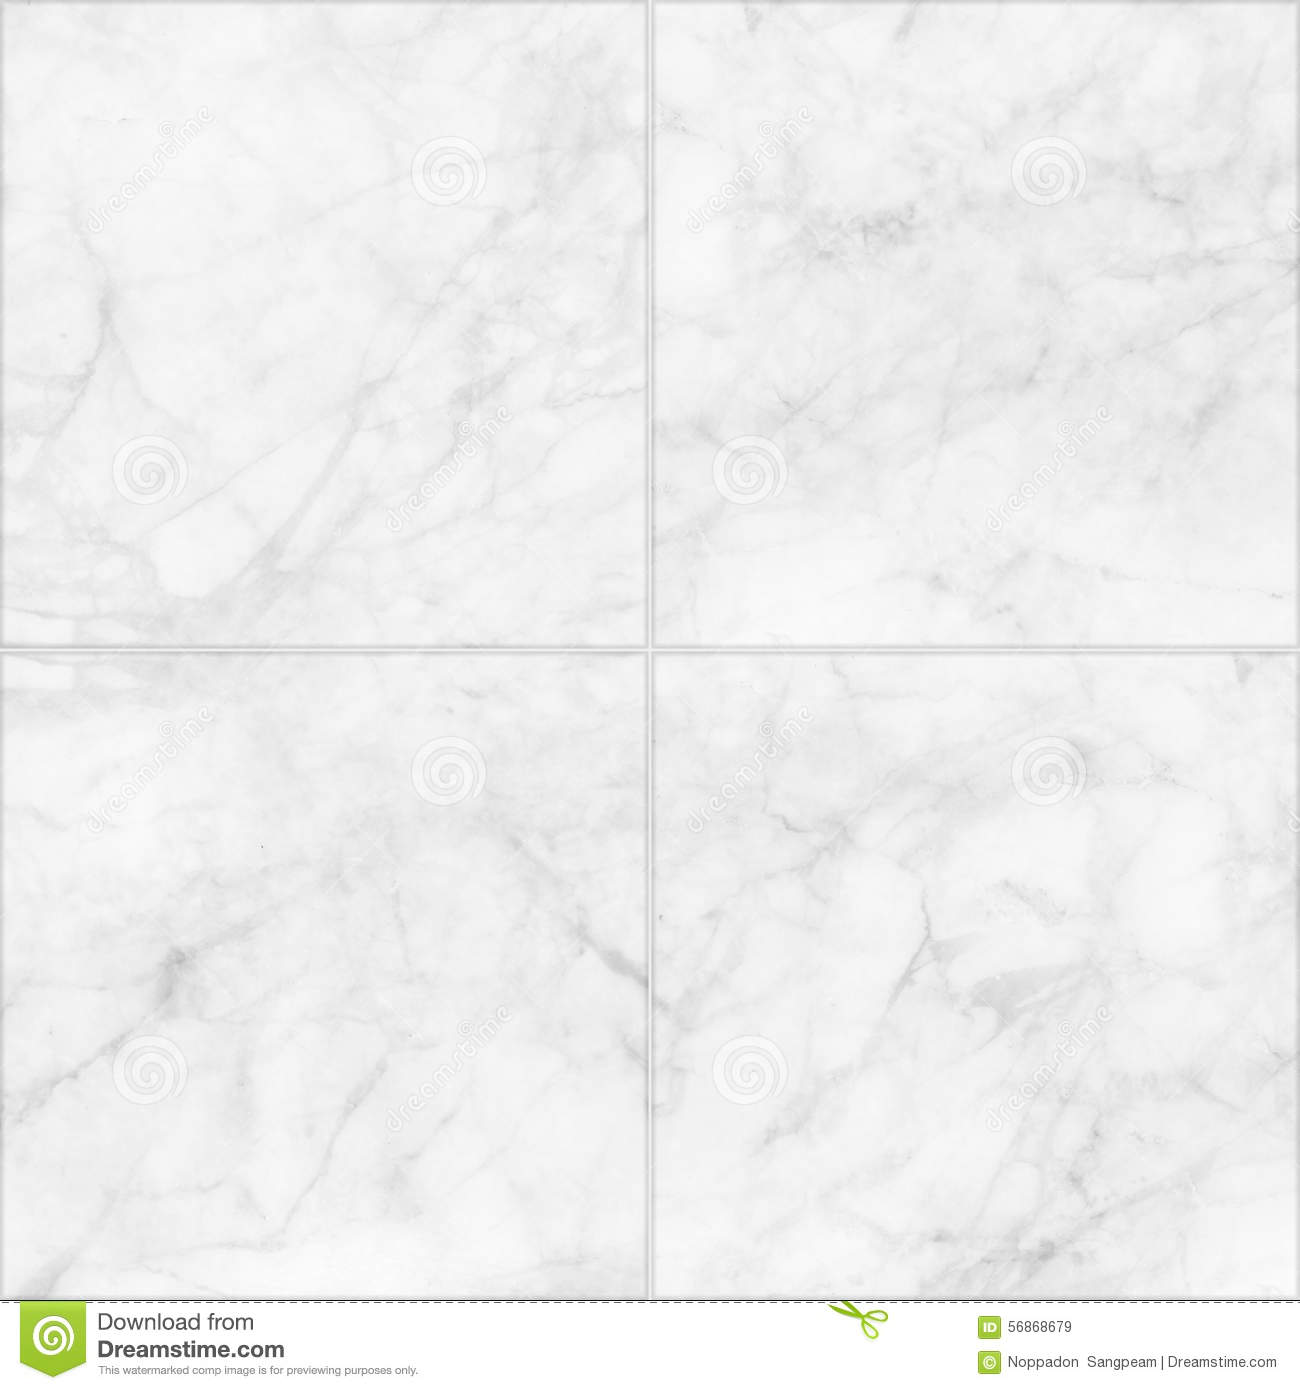 White Marble Tiles Seamless Flooring Texture For Background And Design Stock Image Image Of Ceramic Granite 56868679